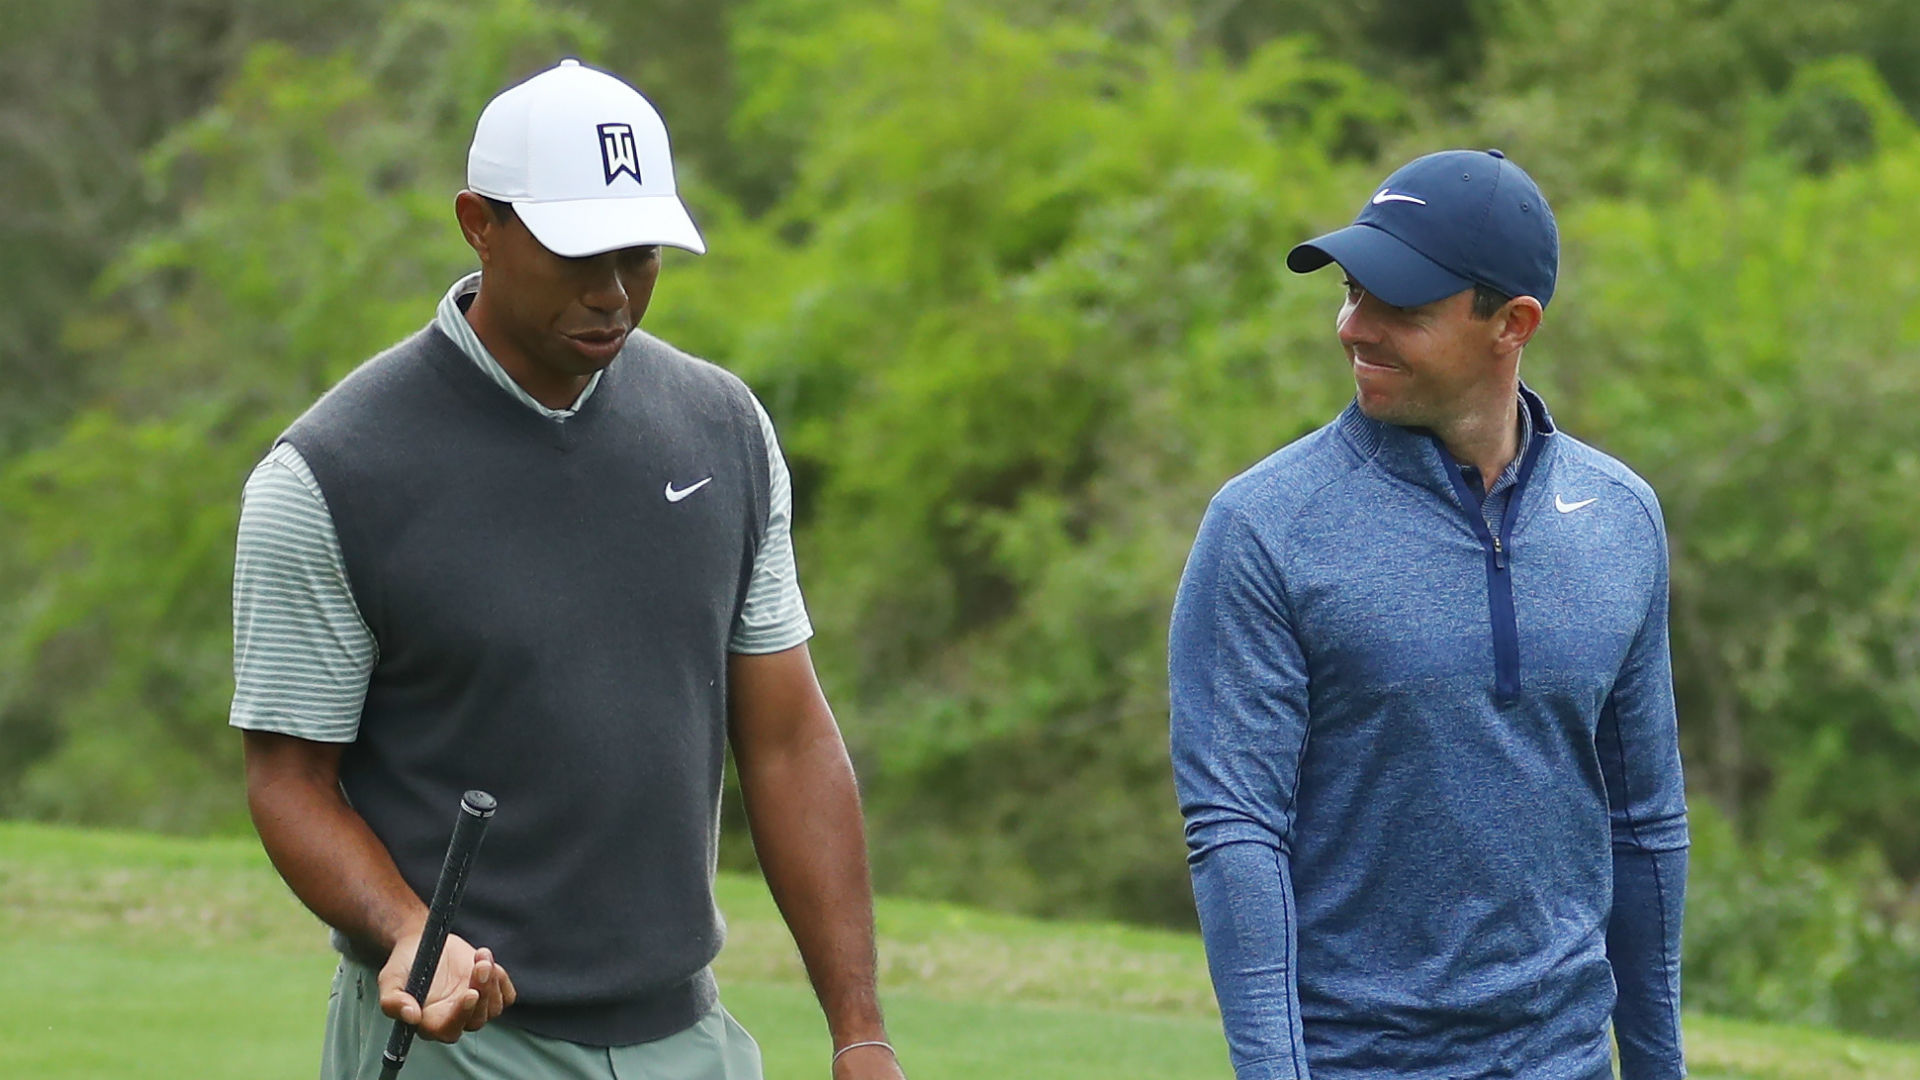 Tiger Woods, Rory McIlroy to take part in skins event in Japan, report says